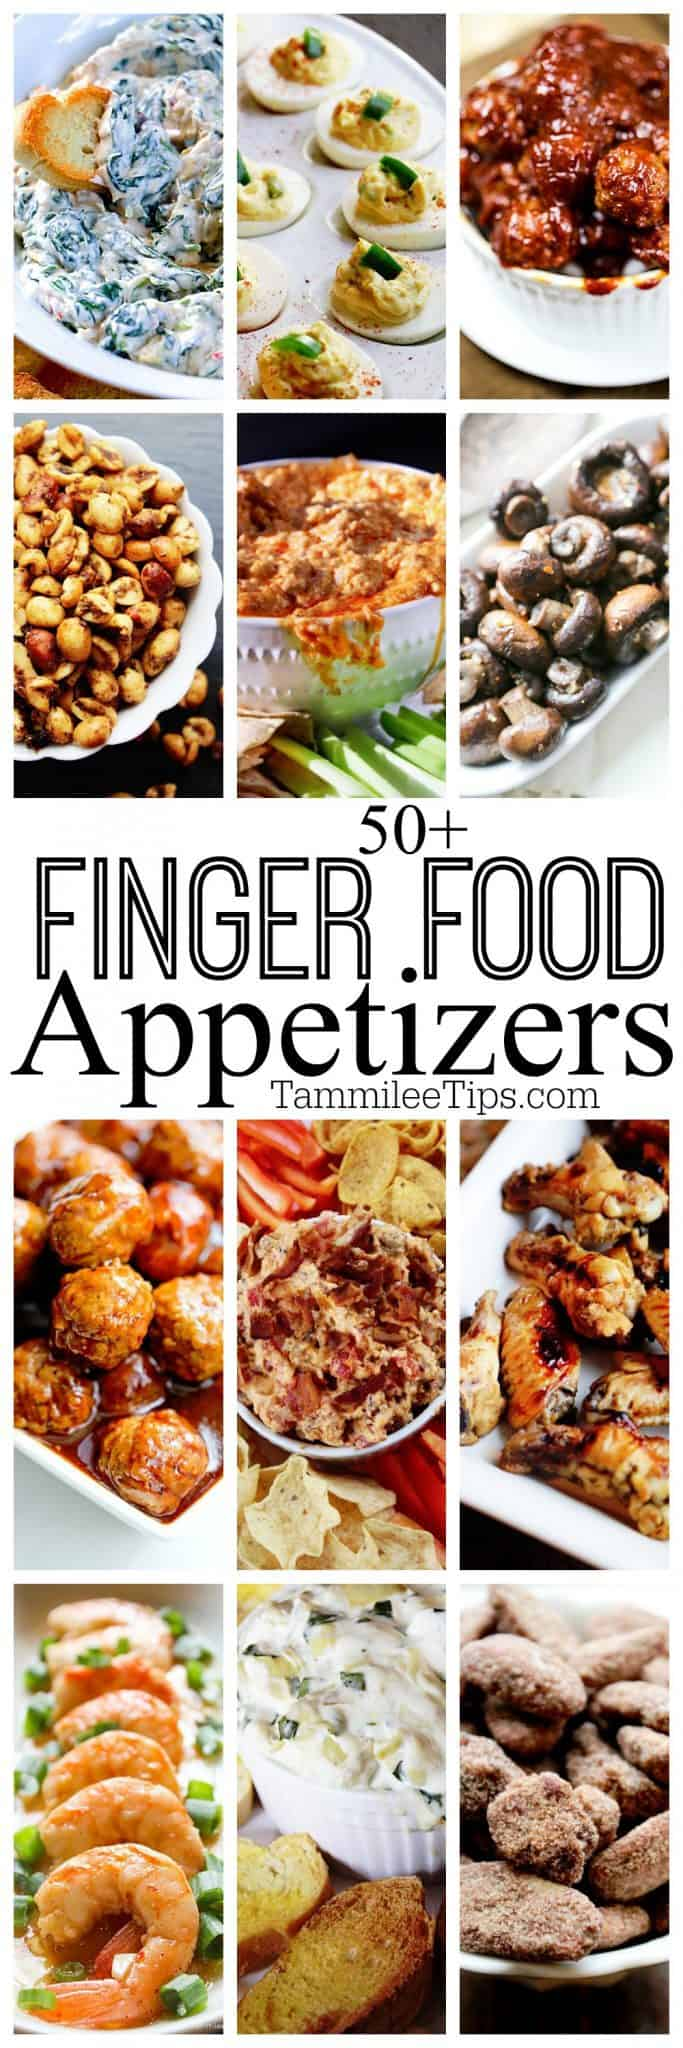 50+ finger food appetizer recipes perfect for holiday parties, super bowl football parties, birthdays or any event. #crockpot #slowcooker #appetizers #fingerfood #dips #recipes